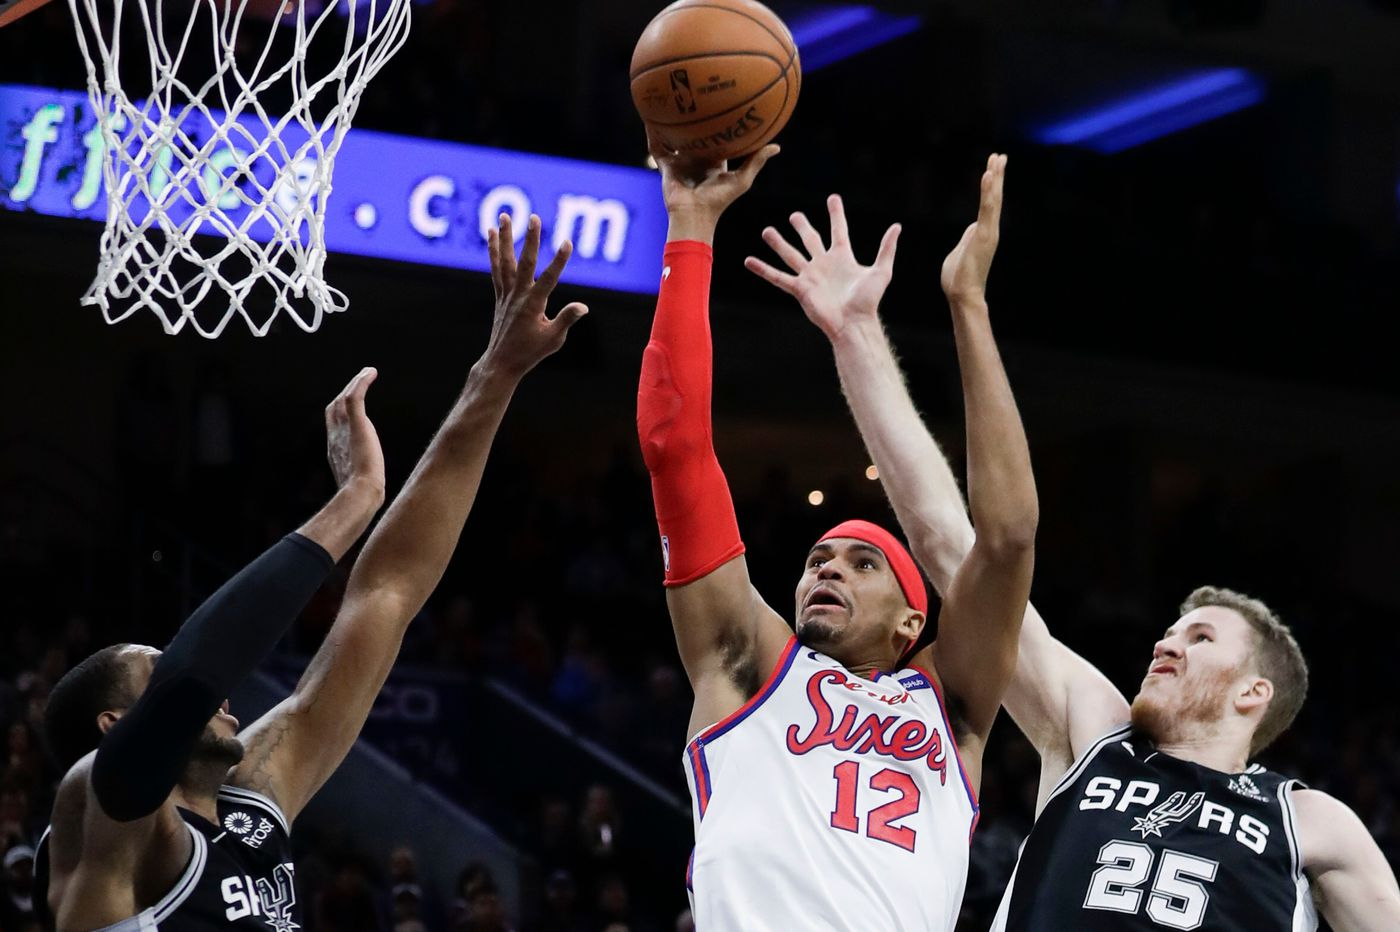 Tobias Harris scores 26 to lead the Sixers over San Antonio